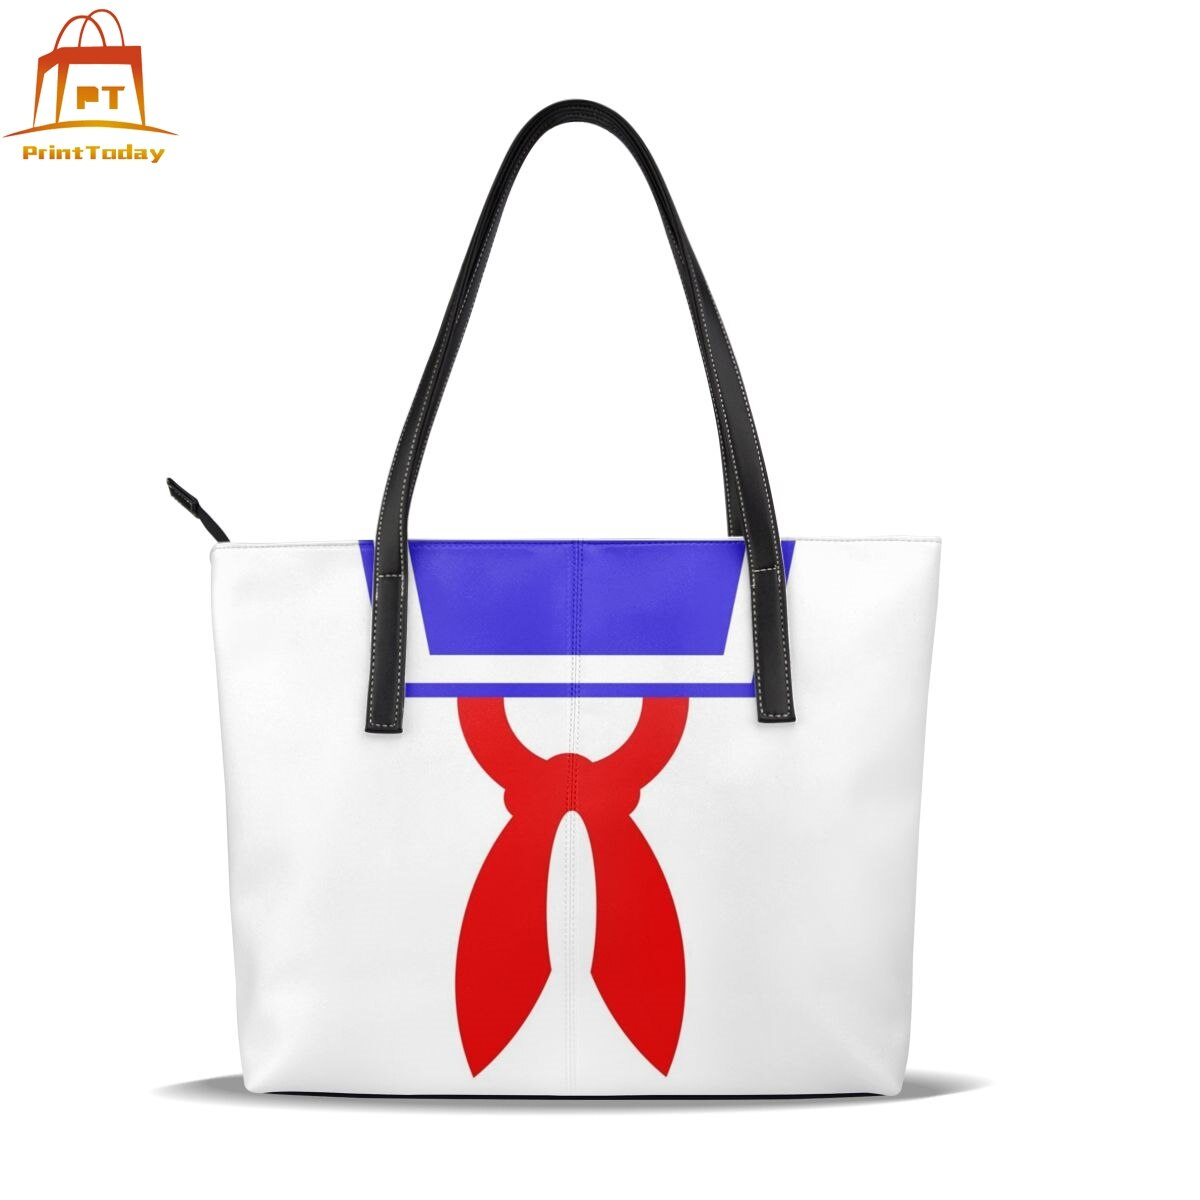 Ghostbusters Handbag Mr Stay Puft Top-handle Bags High quality Trending Leather Tote Bag Women Handbags